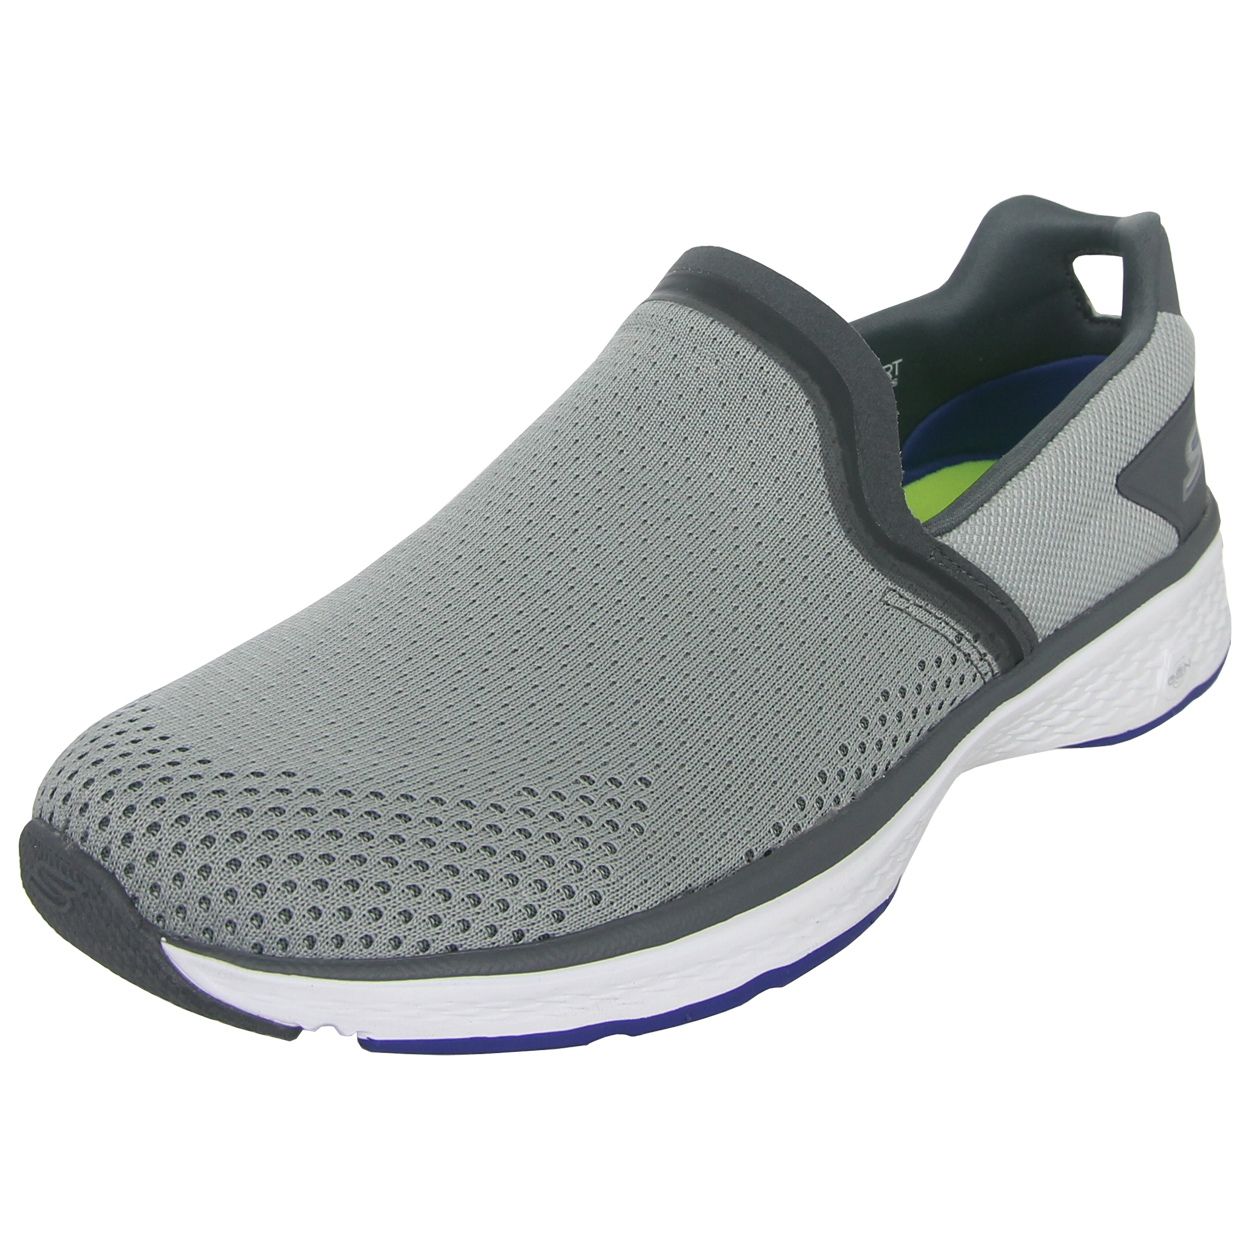 skechers shoes skechers-gowalk nxesbis